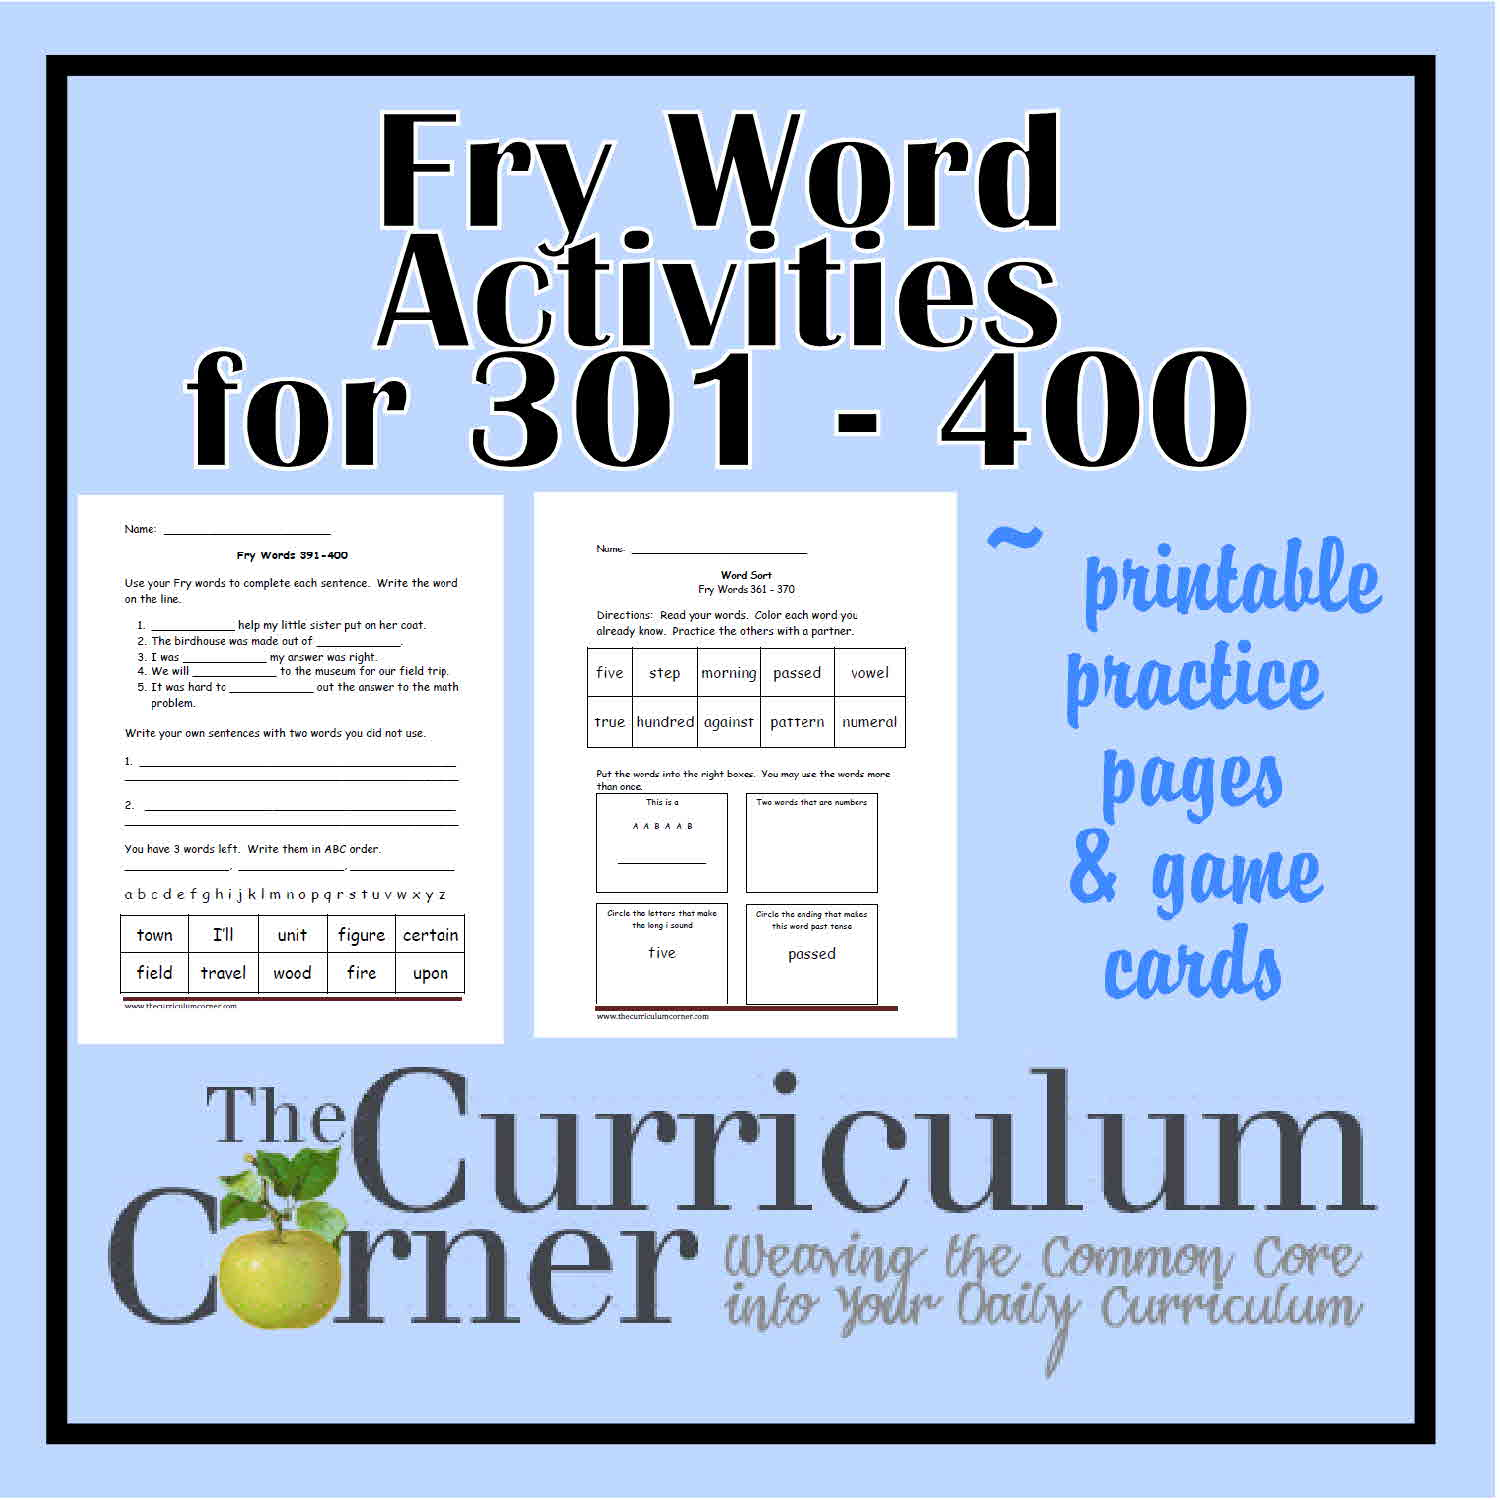 Worksheet Fry Sight Word Flashcards fry fourth hundred printables 301 400 the curriculum corner 123 400